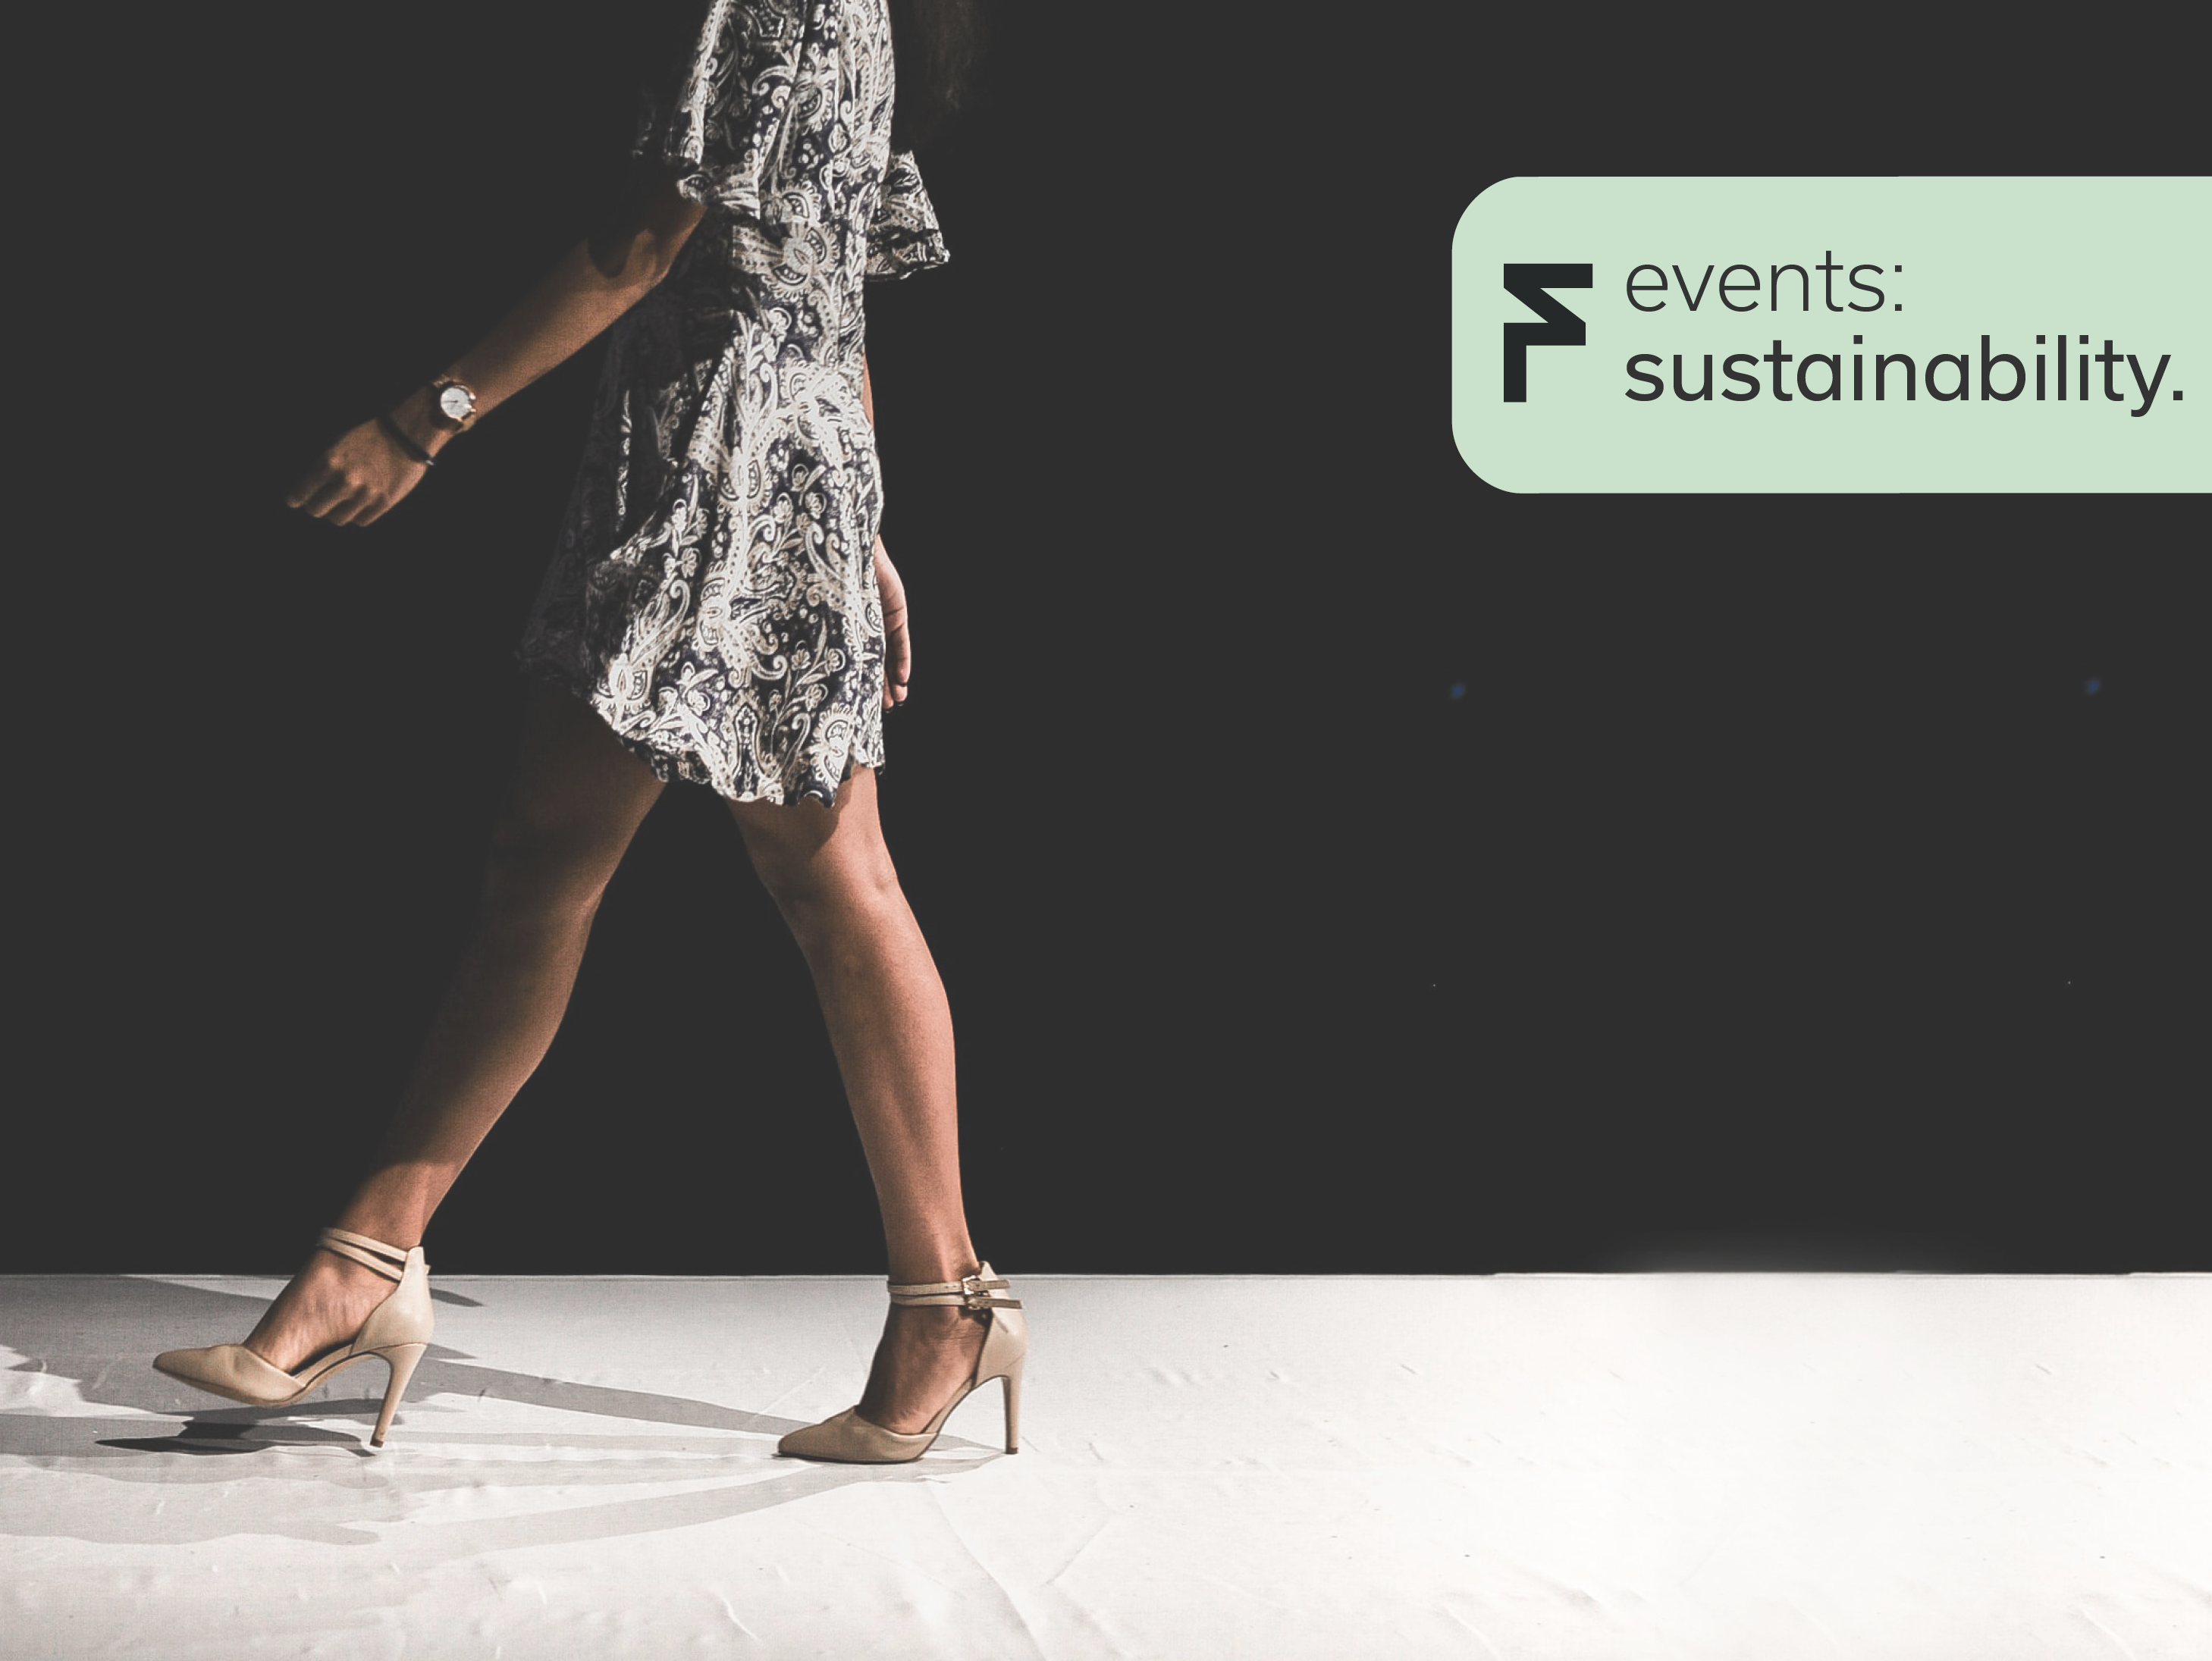 SOLD OUT - Foundry Sustainability Events: Sustainable Fashion